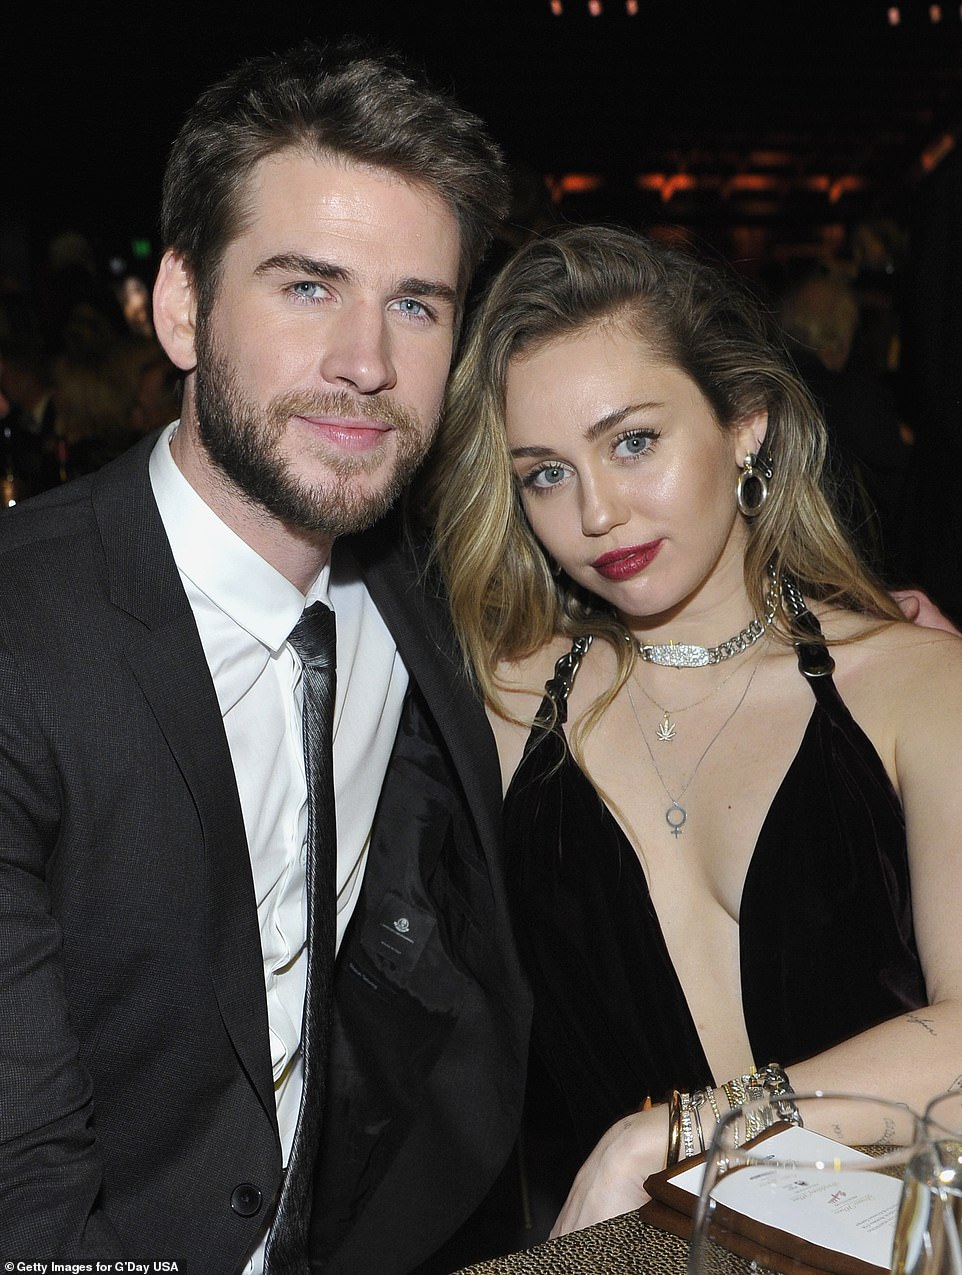 Liam Hemsworth and Miley Cyrus make first public appearance as newlyweds at G'Day USA Gala